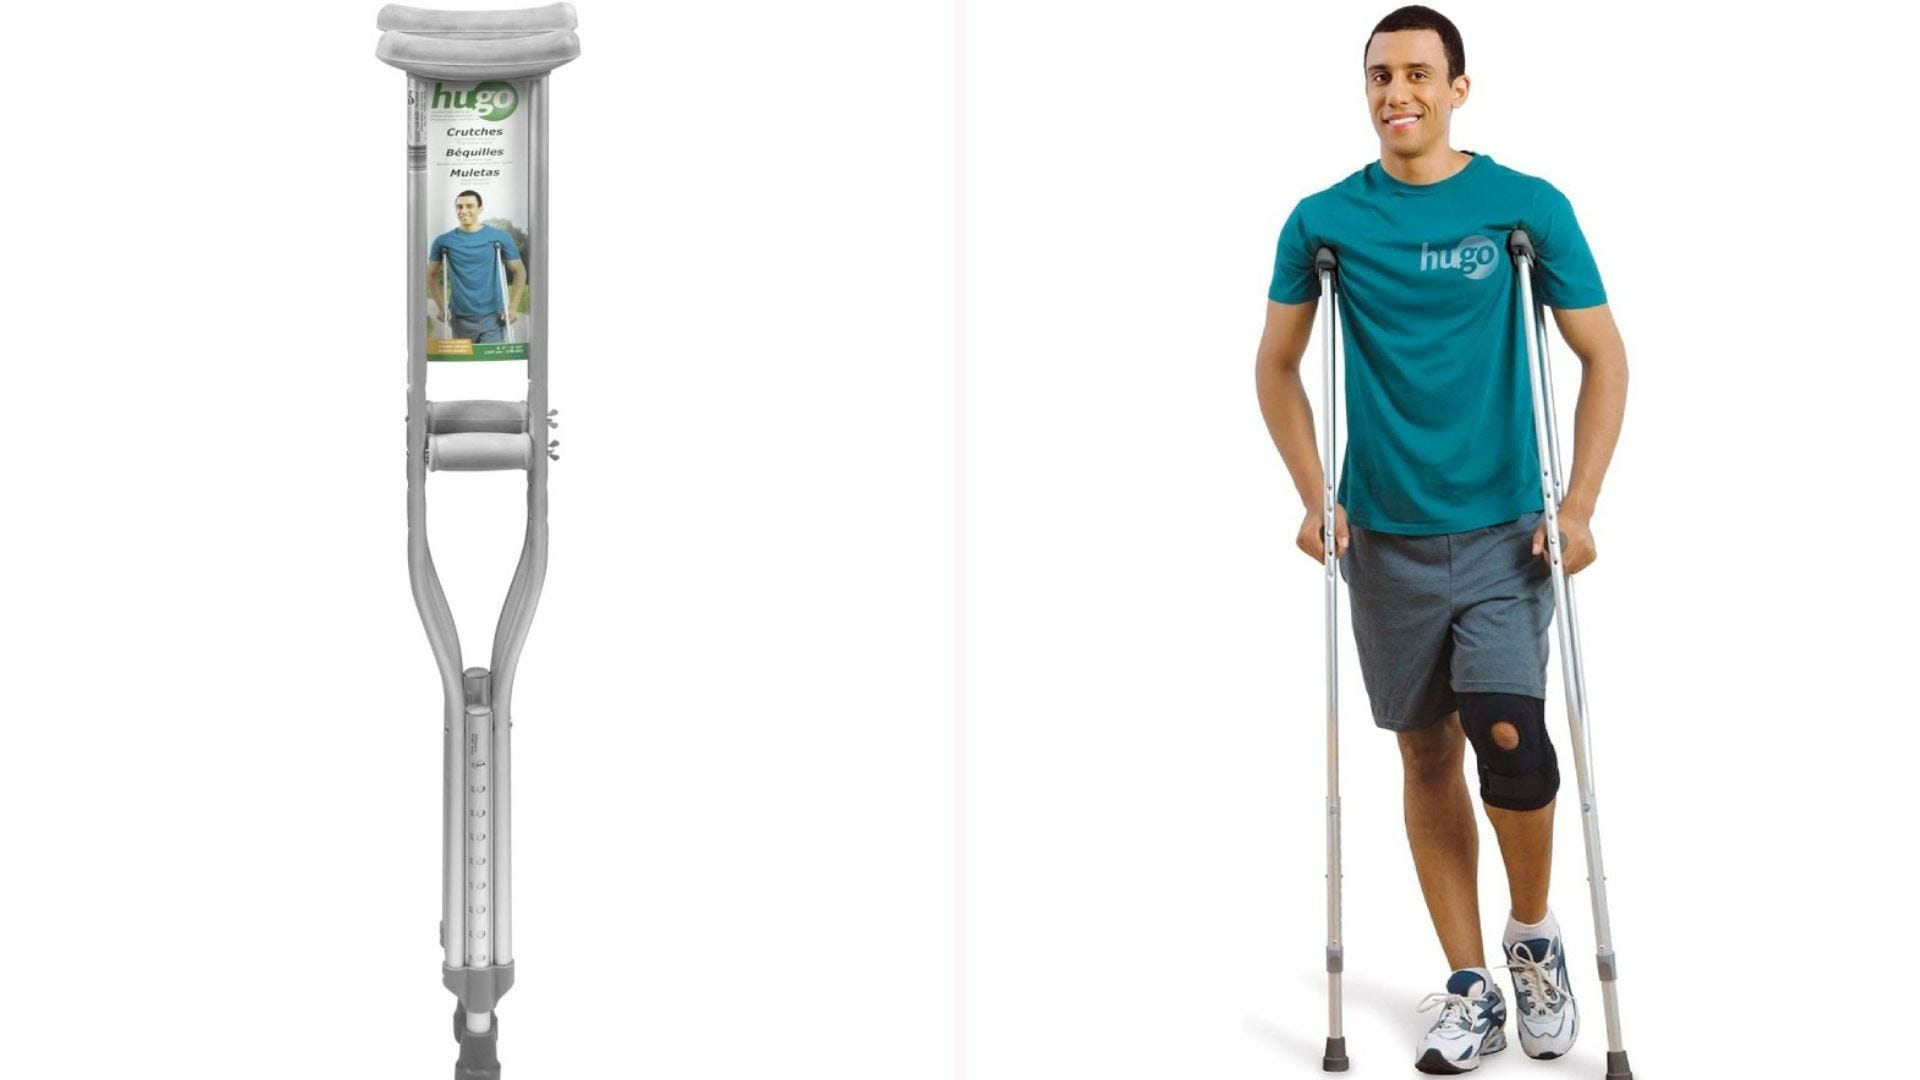 Man with teal-colored t-shirt and shorts using crutches.